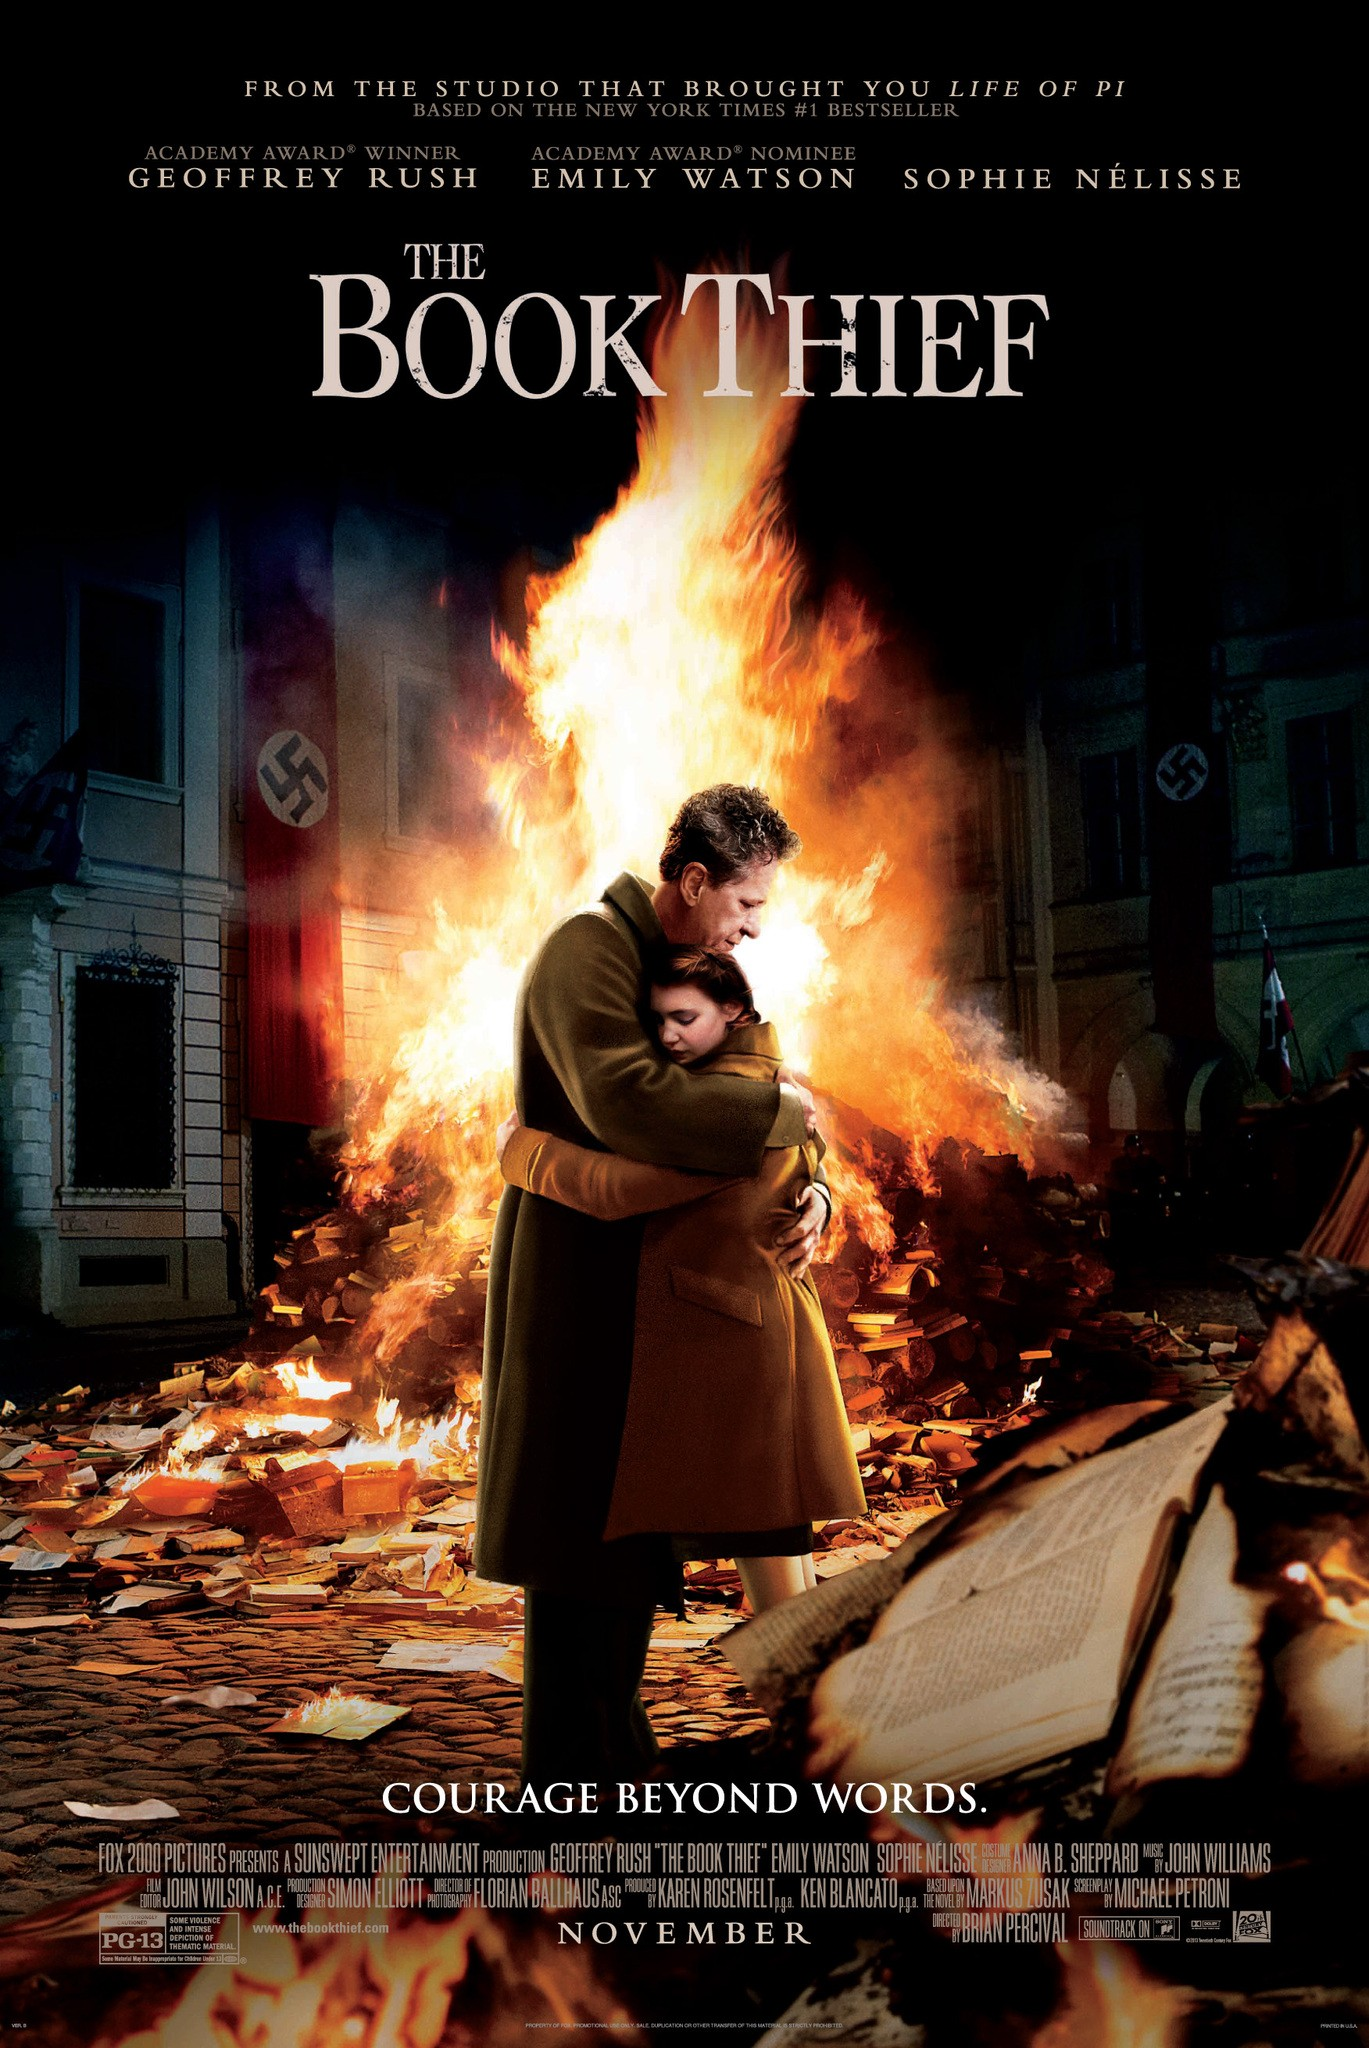 The Book Thief-Official Poster Banner PROMO POSTER-11OUTUBRO2013-01